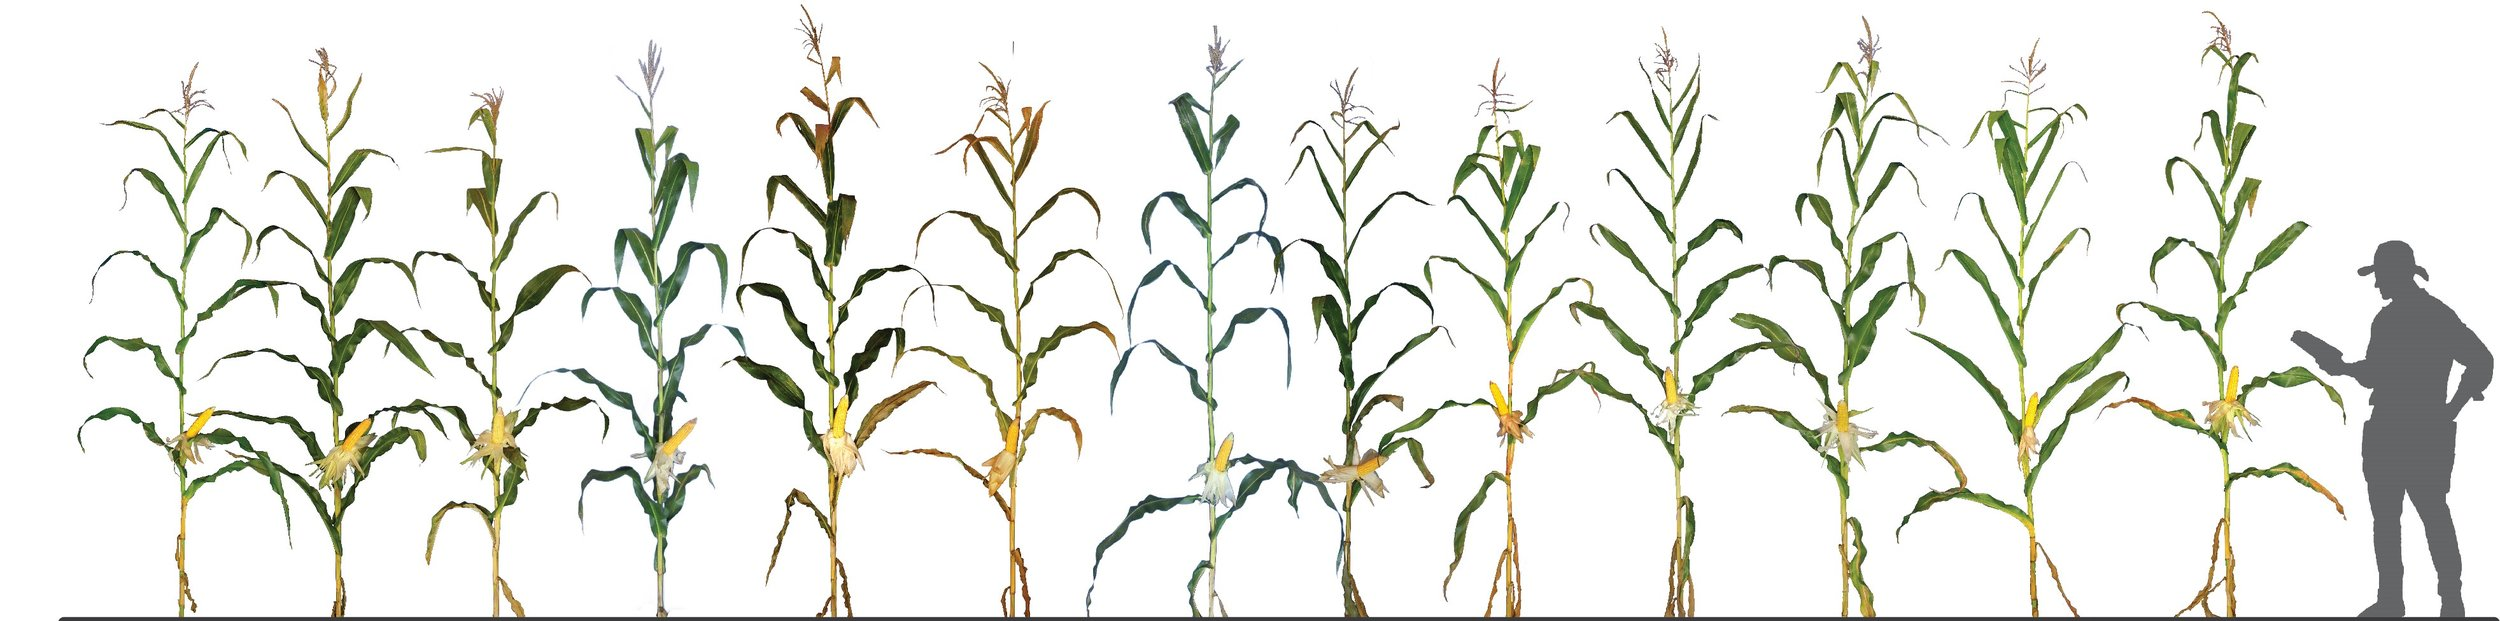 A sample of our commercial silage-specific corn hybrids that have proven themselves during our rigorous silage testing program. Multiple repetitions of each hybrid have performed in a range of locations through various environmental pressures over several seasons before they are recommended to our customers as a product for them to test in their environment before they come to market.